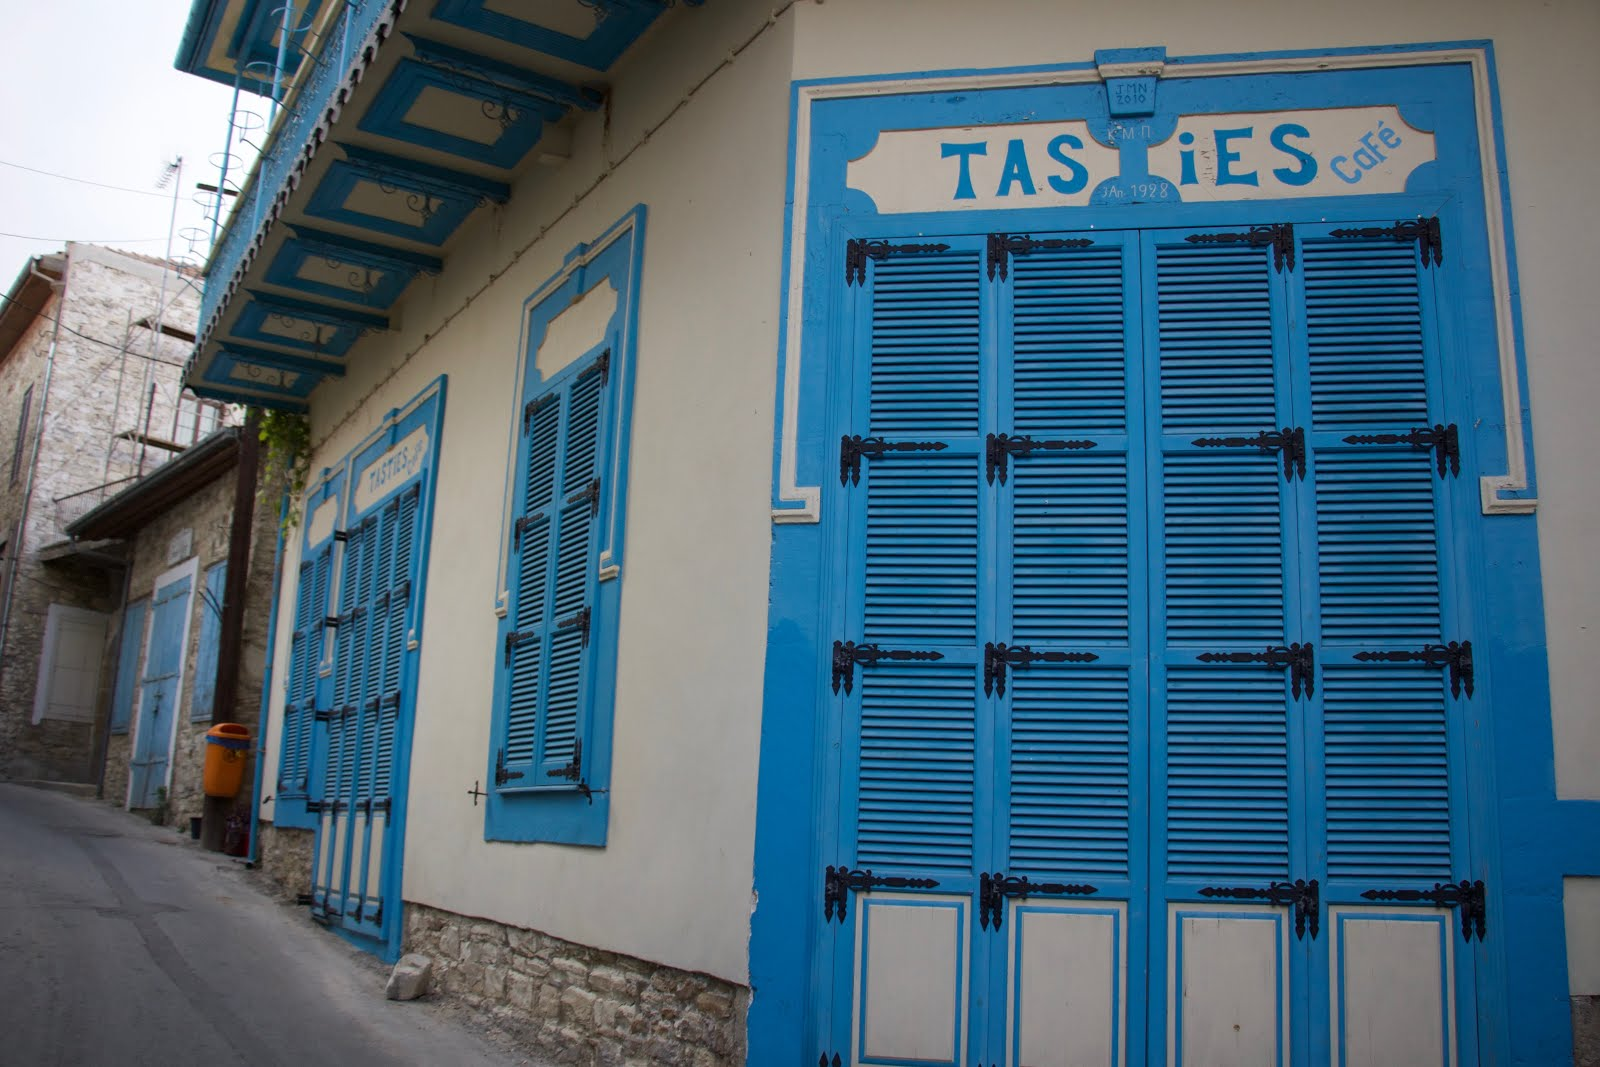 And as I hurried back to the car this aqua blue door tempted me to stop for a quick photo. & Blue doors in Lefkara Cyprus | Prêt-à-Vivre [Ready to ... Waltz]